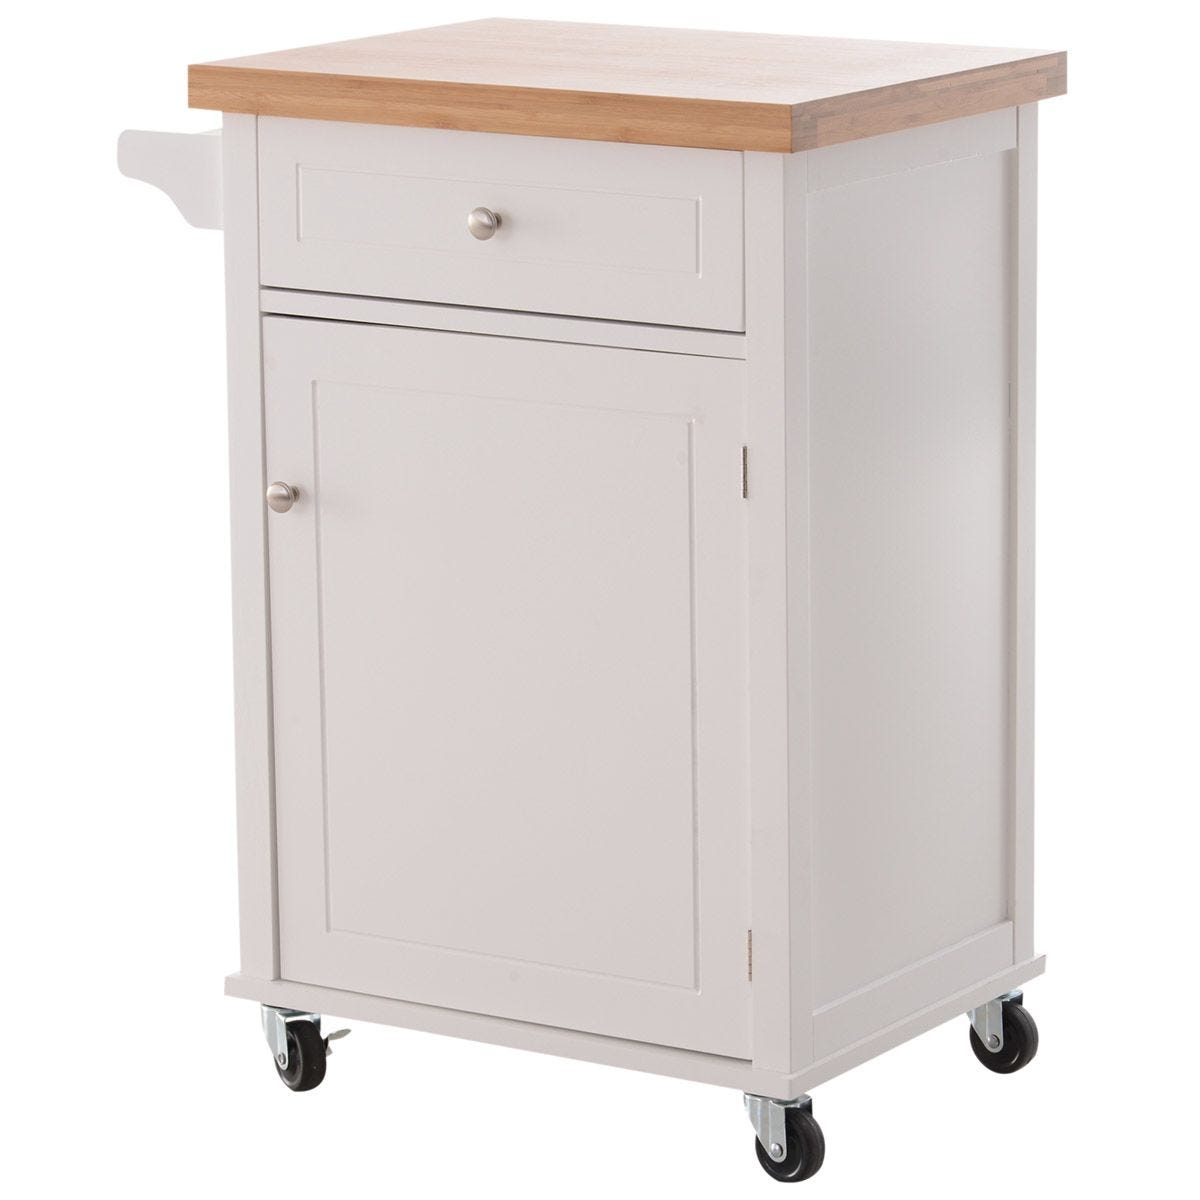 Kitchen Cart Storage Trolley with Drawer, Cupboard and Towel Rail - White